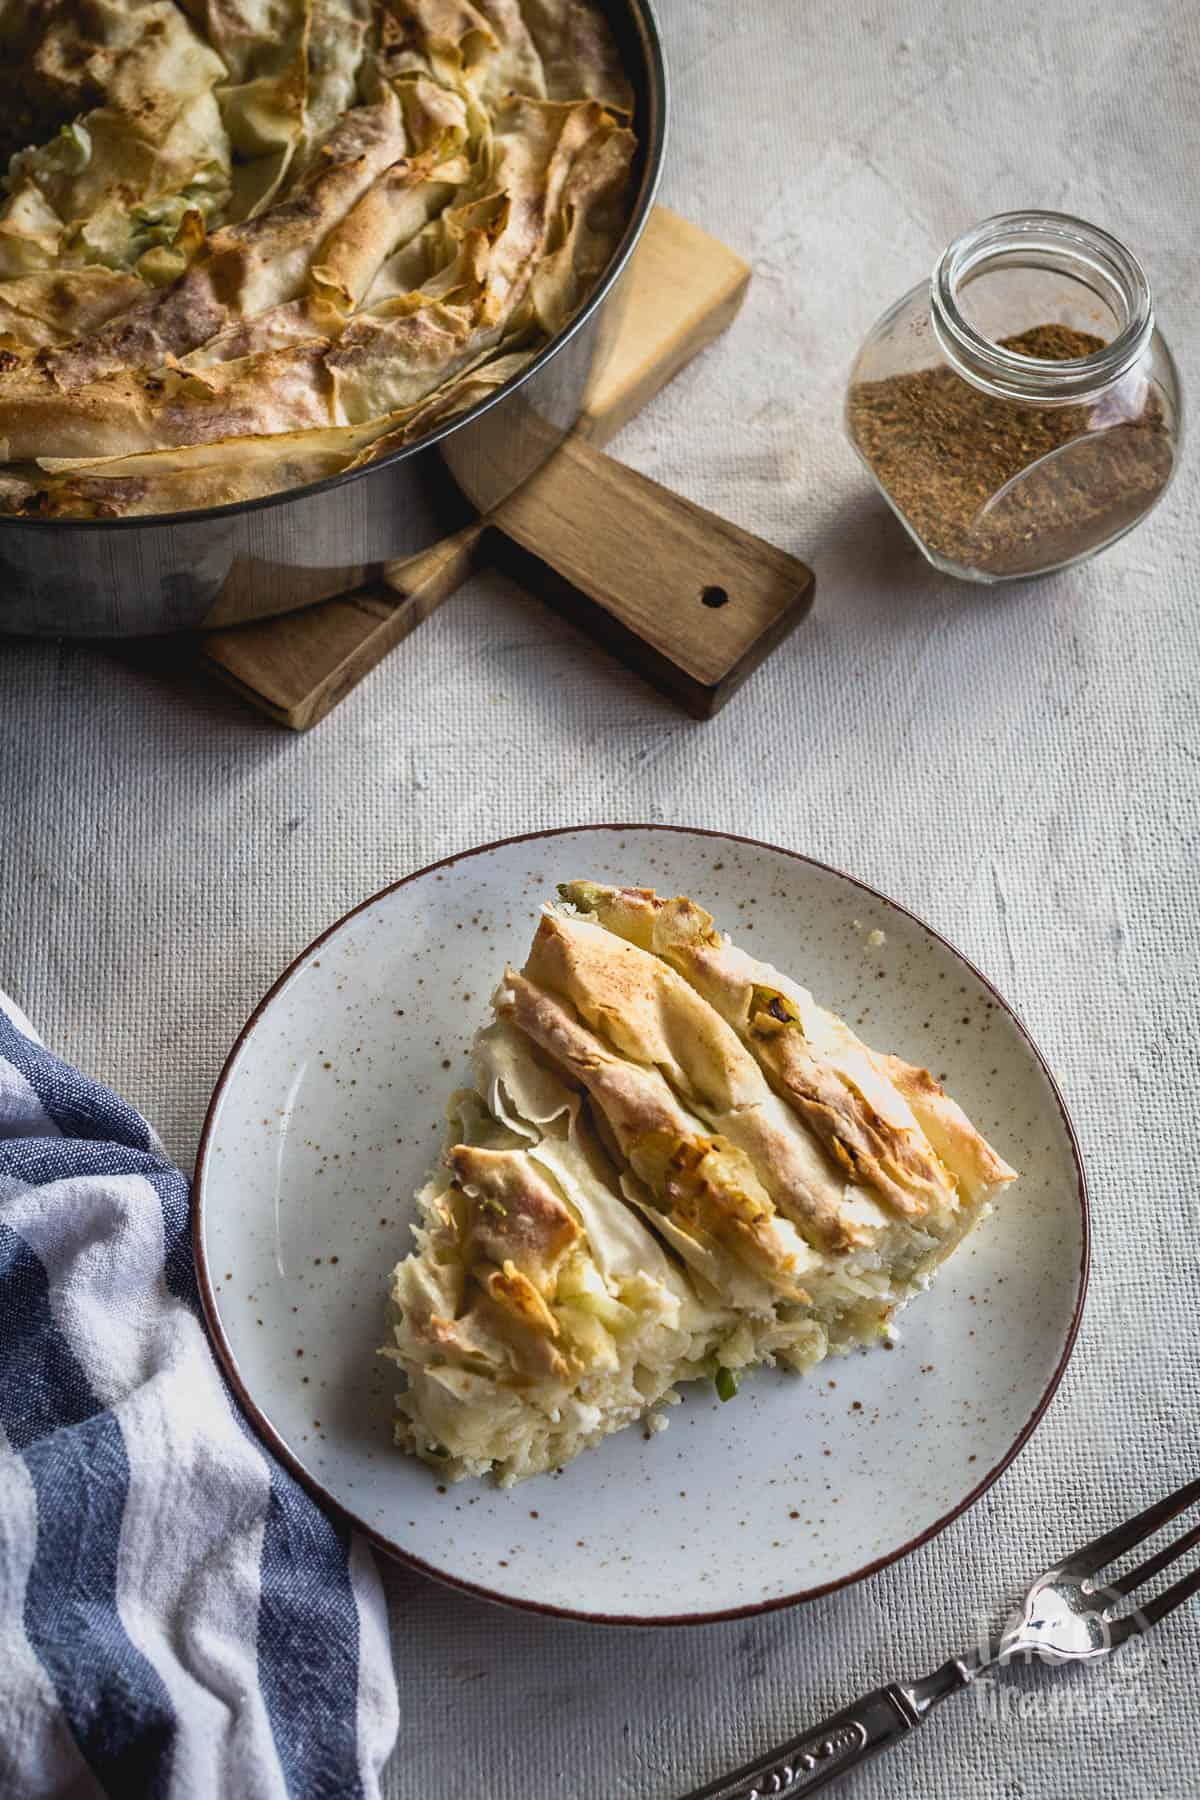 banitsa with a slice taken out and spices aside